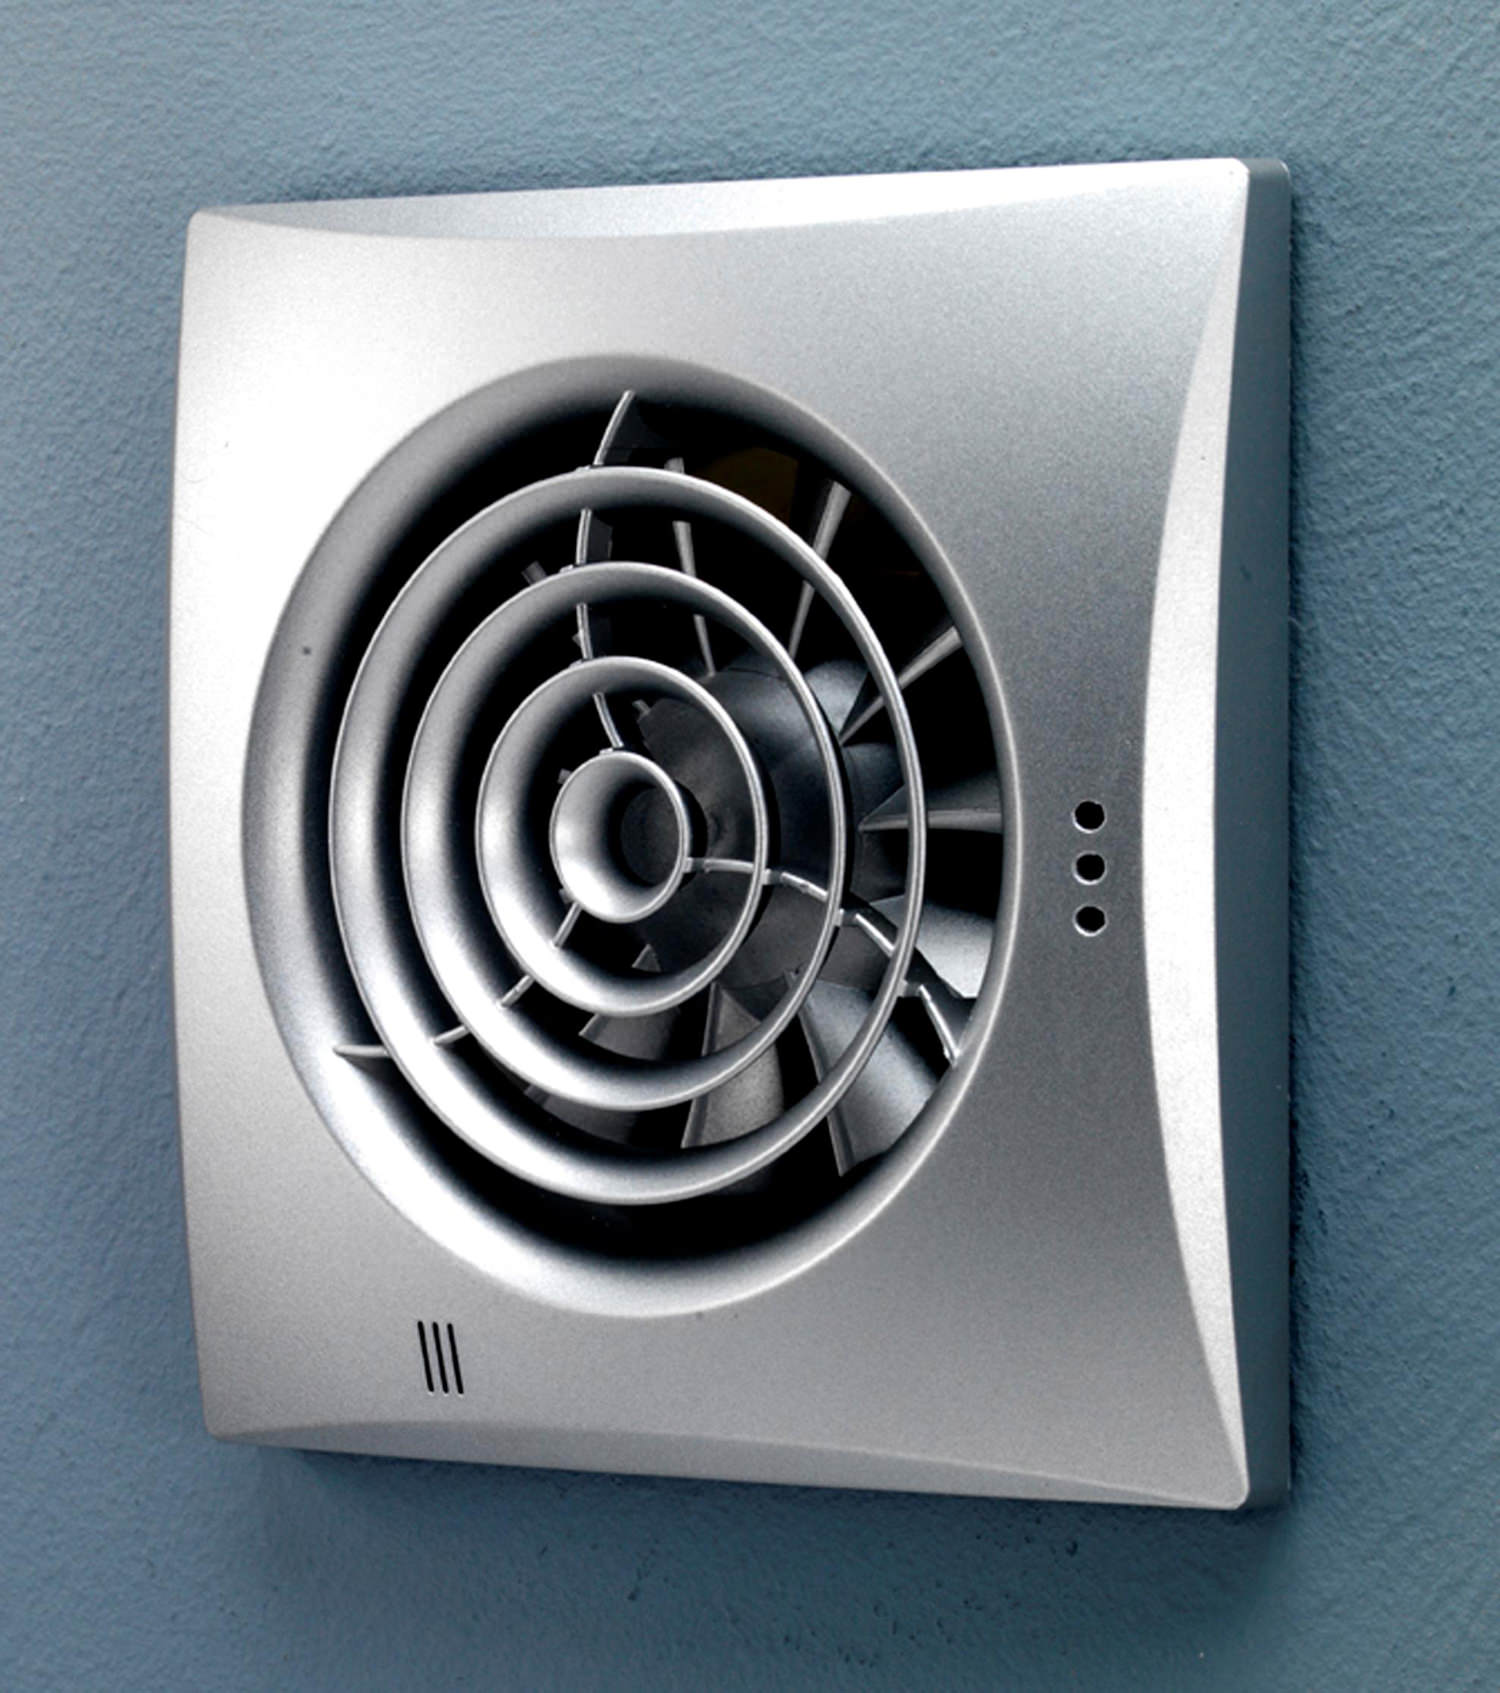 hib hush wall mounted extractor fan with timer and humidity sensor